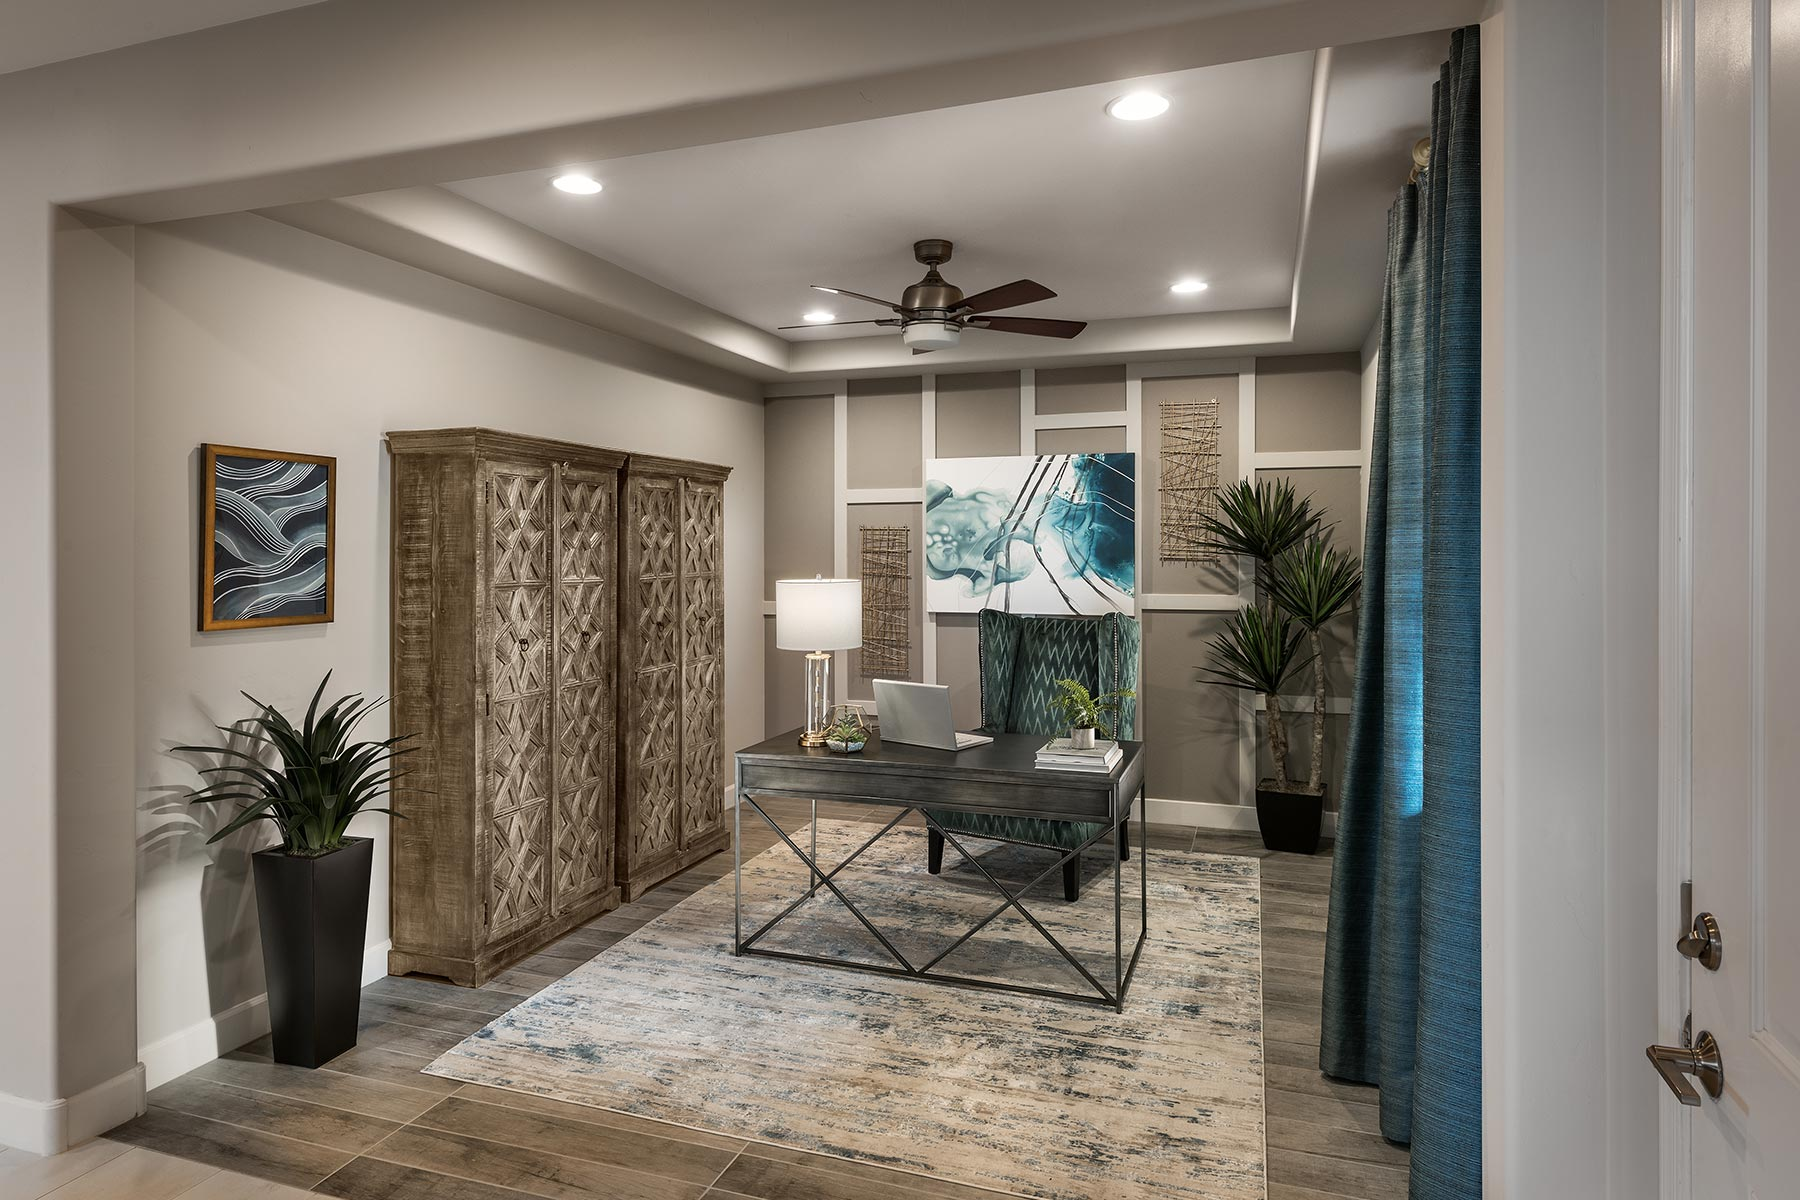 Willow Plan Study Room at Desert Oasis at Twin Peaks in Marana Arizona by Mattamy Homes